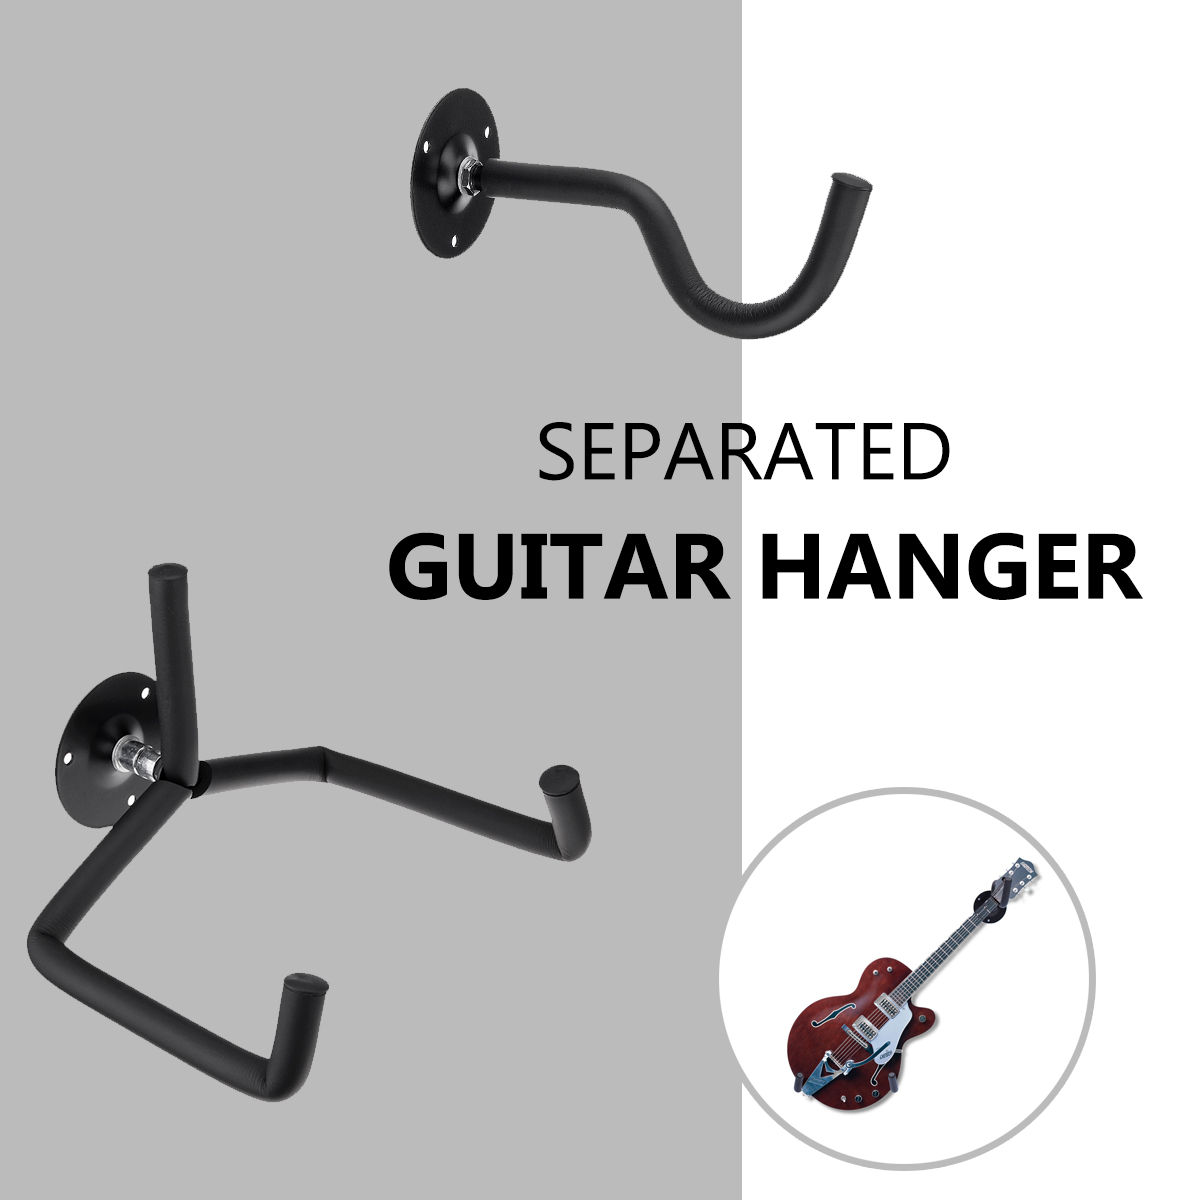 Black Guitar Stand Hanger Hook Oak Horizontal Guitar Wall Mount Stand Holder Rack Bracket + 2 Screw Set Display For Most Guitar